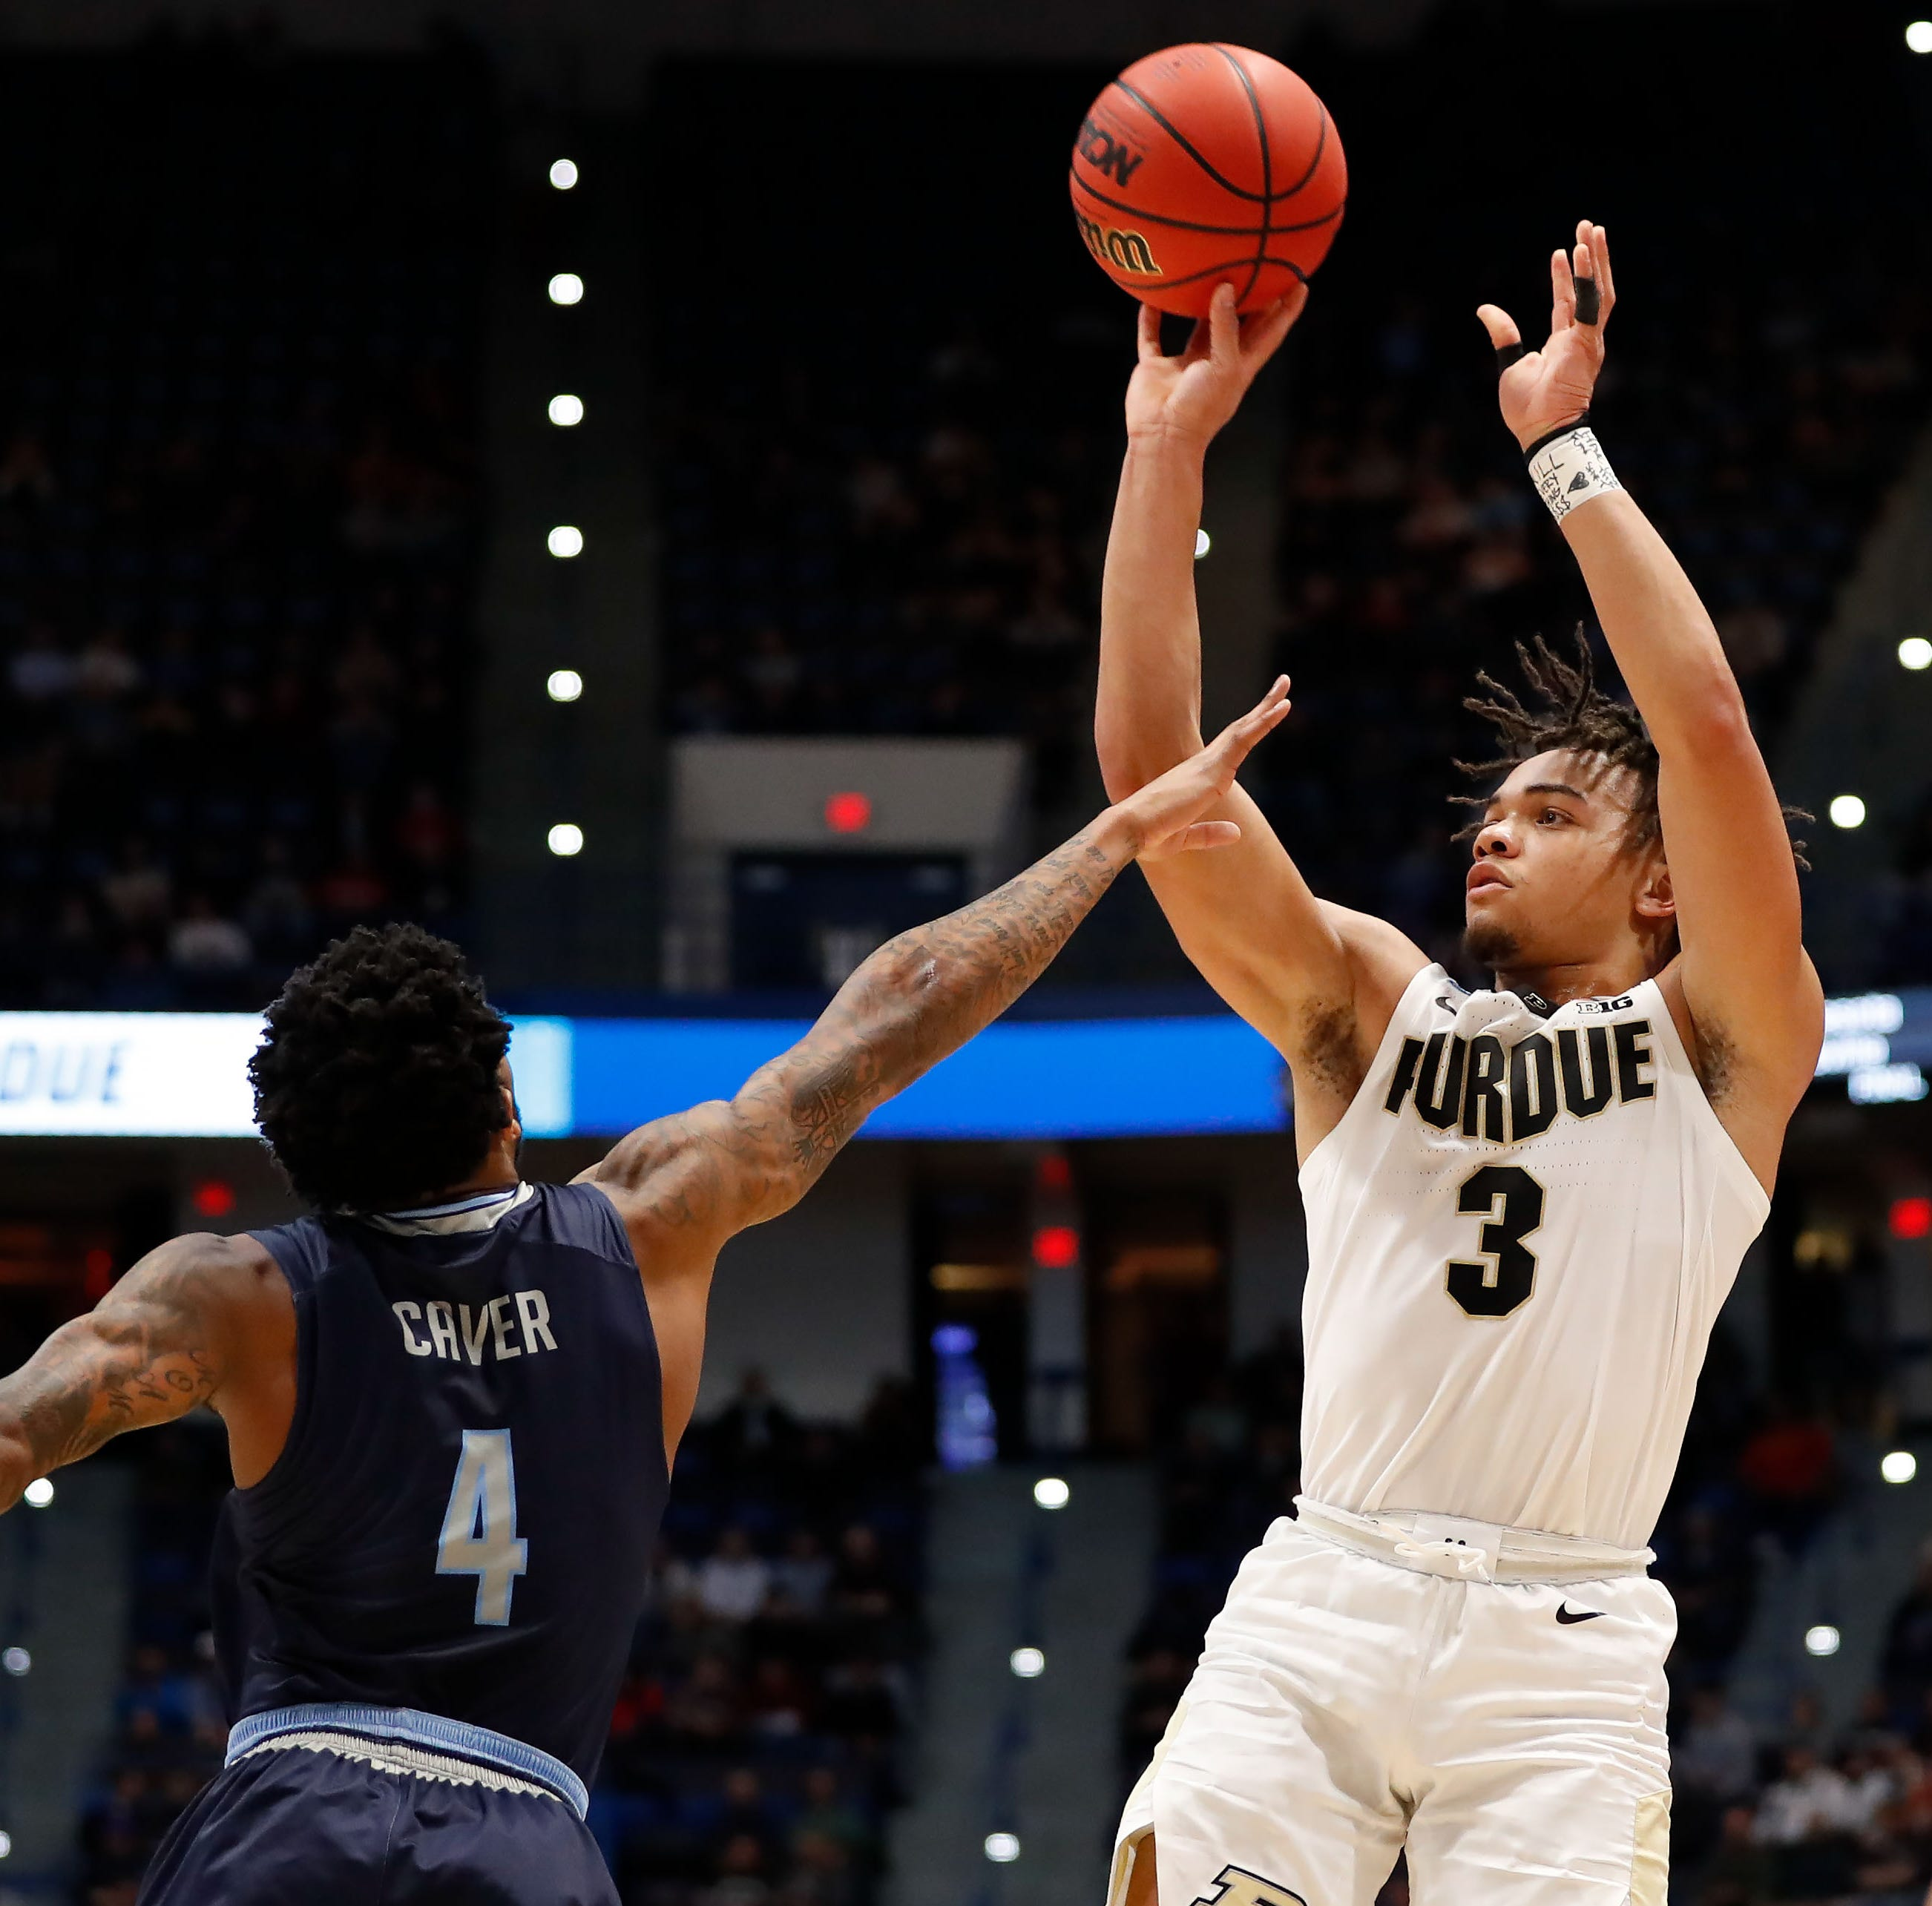 Doyel: Purdue's Carsen Edwards enters Villanova game believing his slump is over